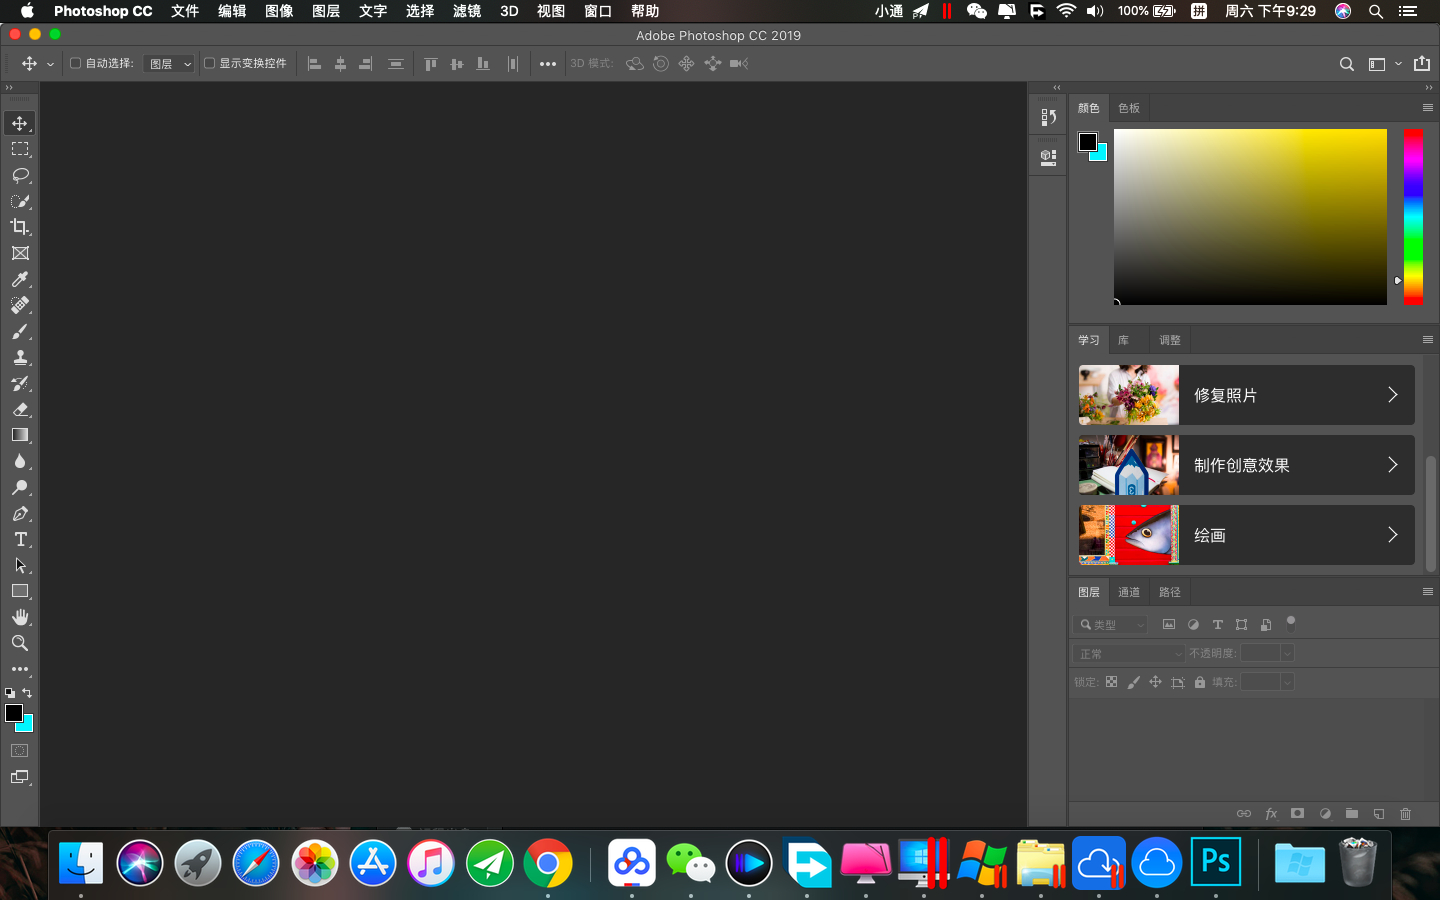 Adobe Photoshop CC 2019 Mac破解版